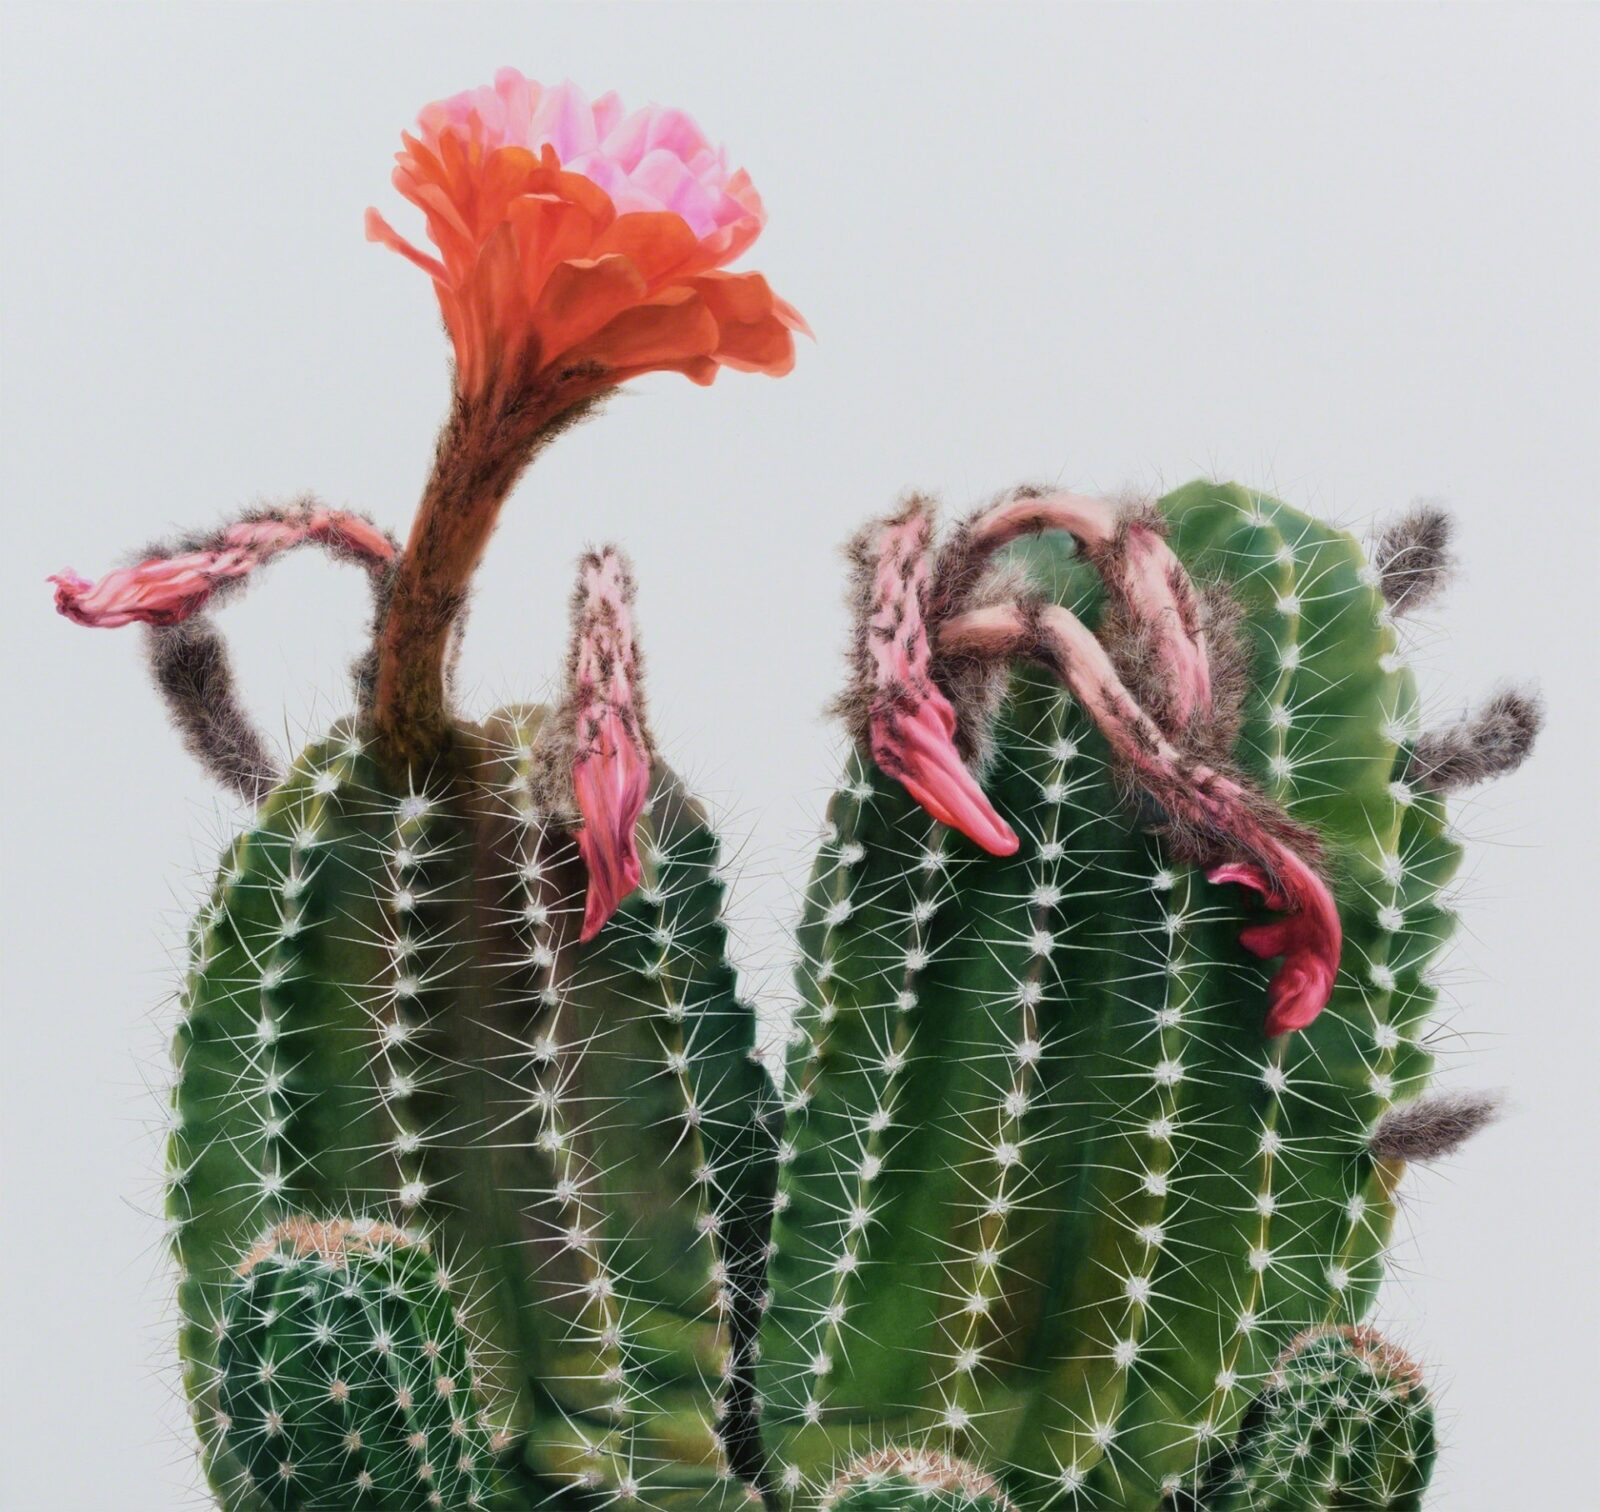 His Work Can Easily Be Taken For Photographs But Only On Closer Examination Do You Understand That Such Cacti Hardly Exist In Nature Forms